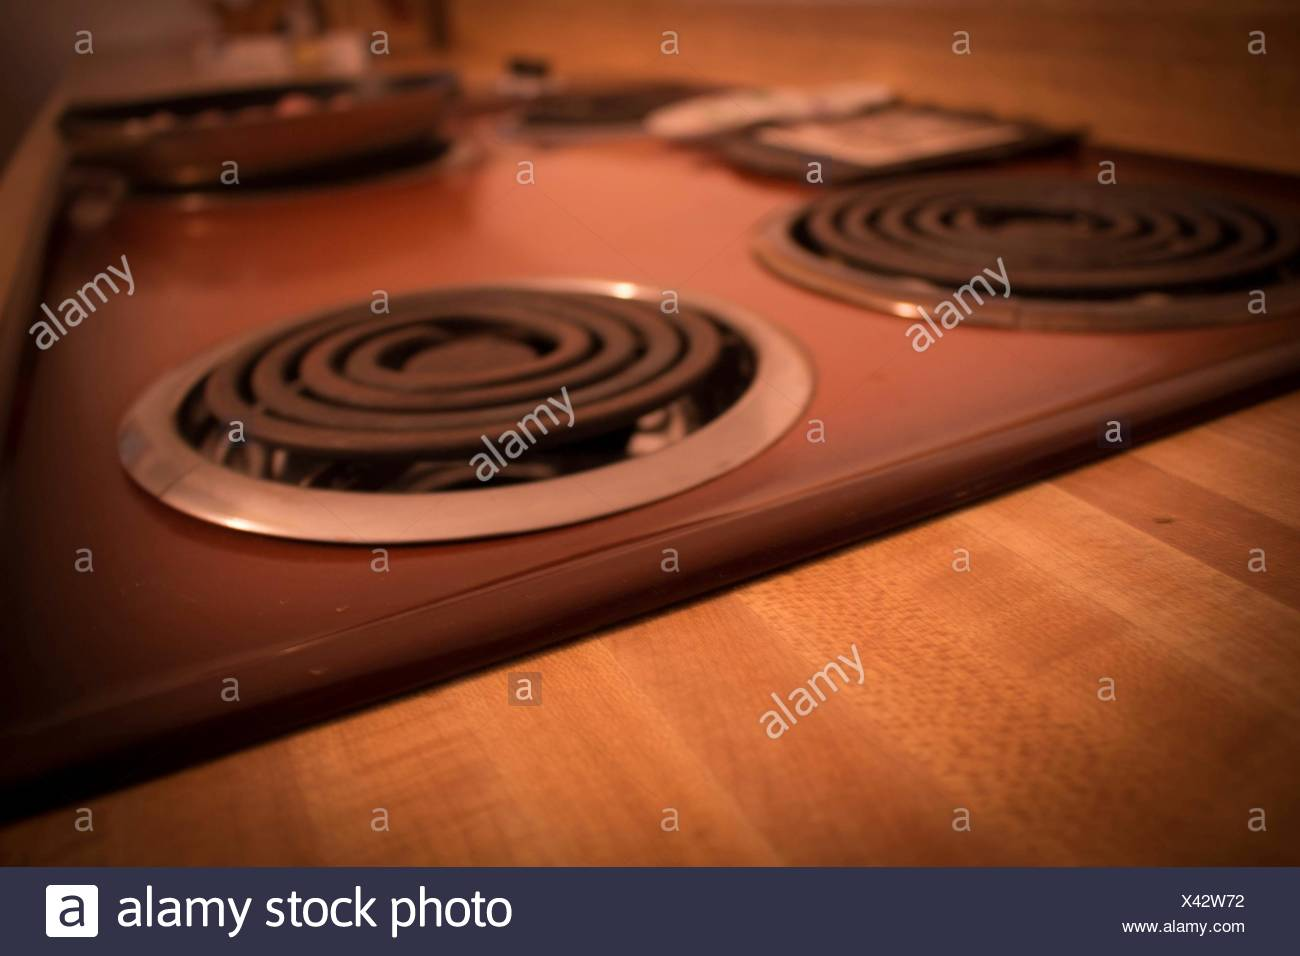 Stove In Kitchen At Home - Stock Image